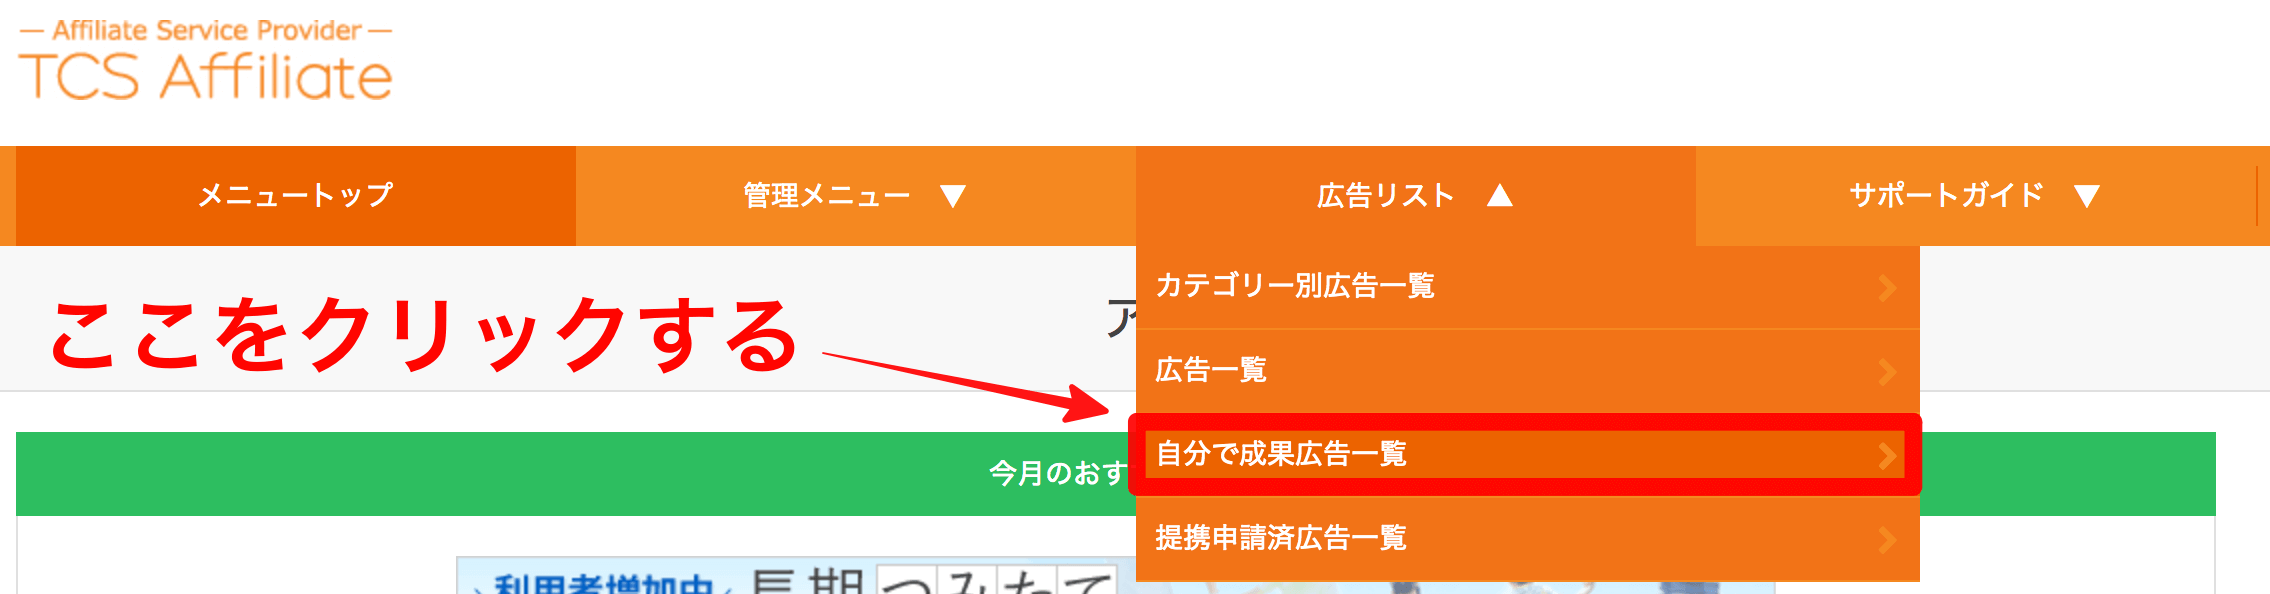 TCSアフィリエイトの自己アフィリエイト画面